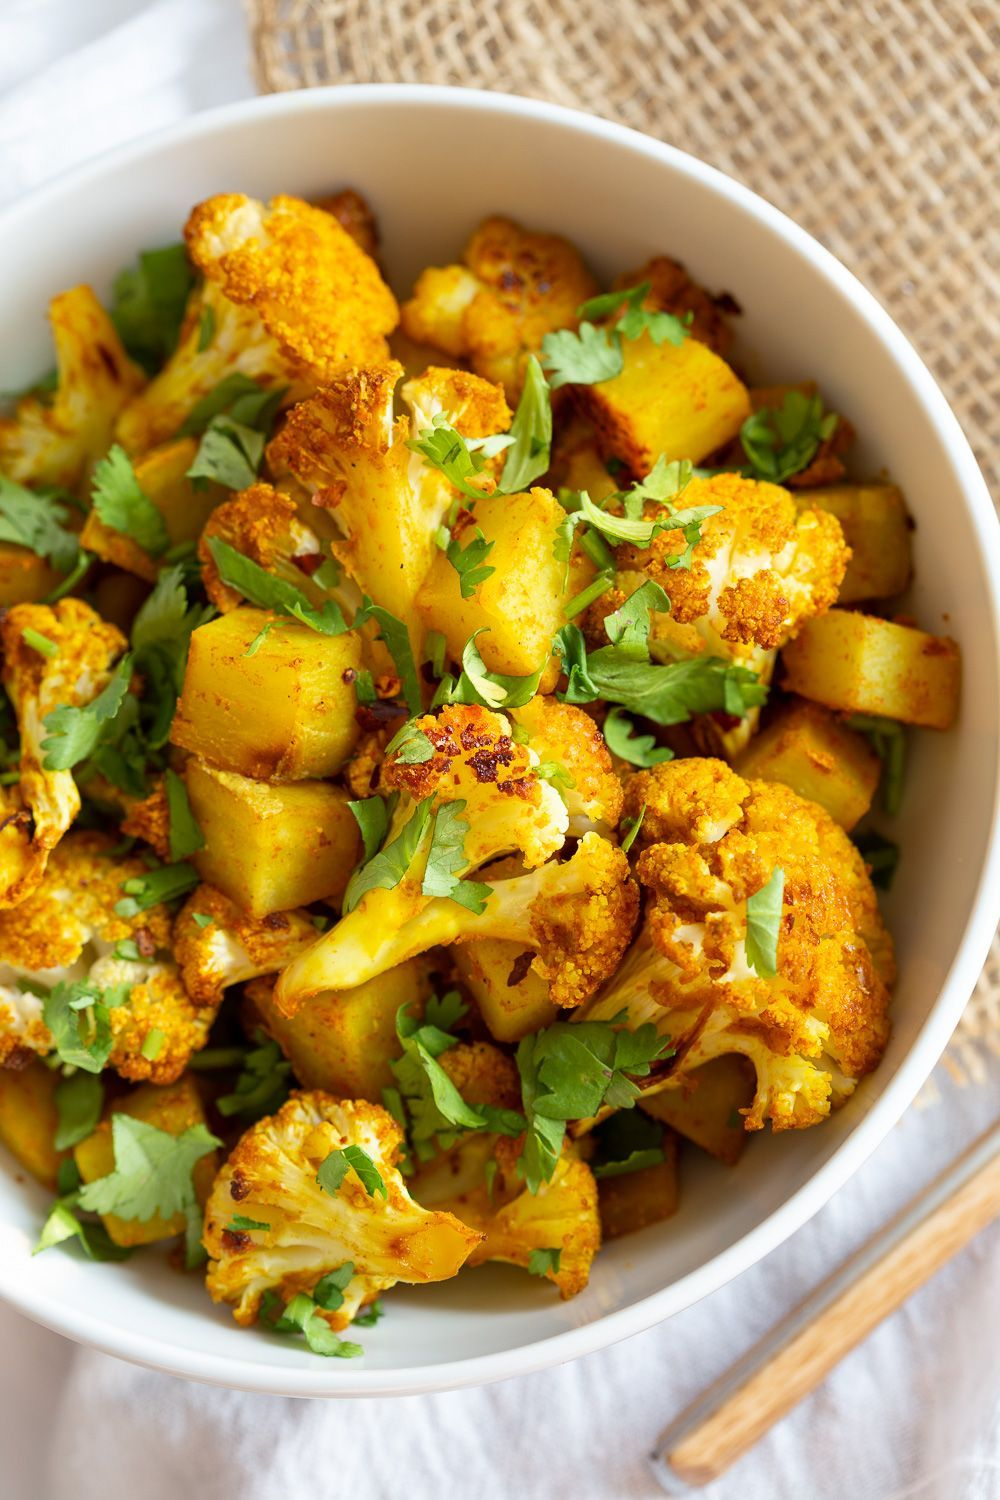 Baked Aloo Gobi Vegan Recipe (Indian Spiced Potato Cauliflower) This chicken recipe is packed with great flavors! #vejetaryentarifleri